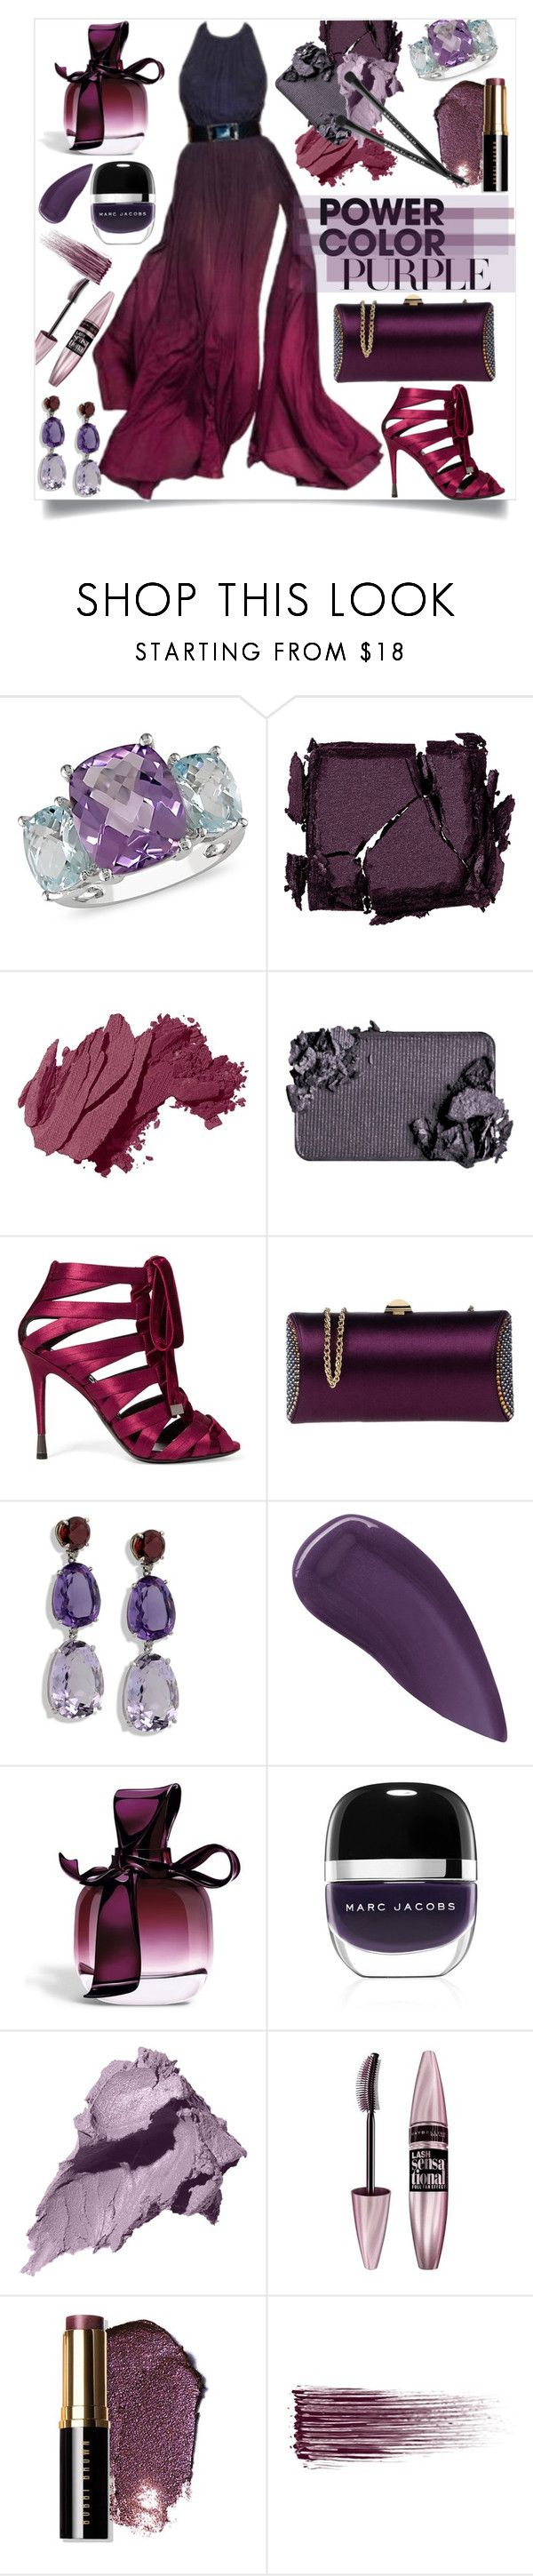 """PurplePower"" by midori-tokyoite on Polyvore featuring ファッション, Carolina Herrera, Ice, Surratt, Bobbi Brown Cosmetics, Tom Ford, Rodo, Lipstick Queen, Nina Ricci と Marc Jacobs"